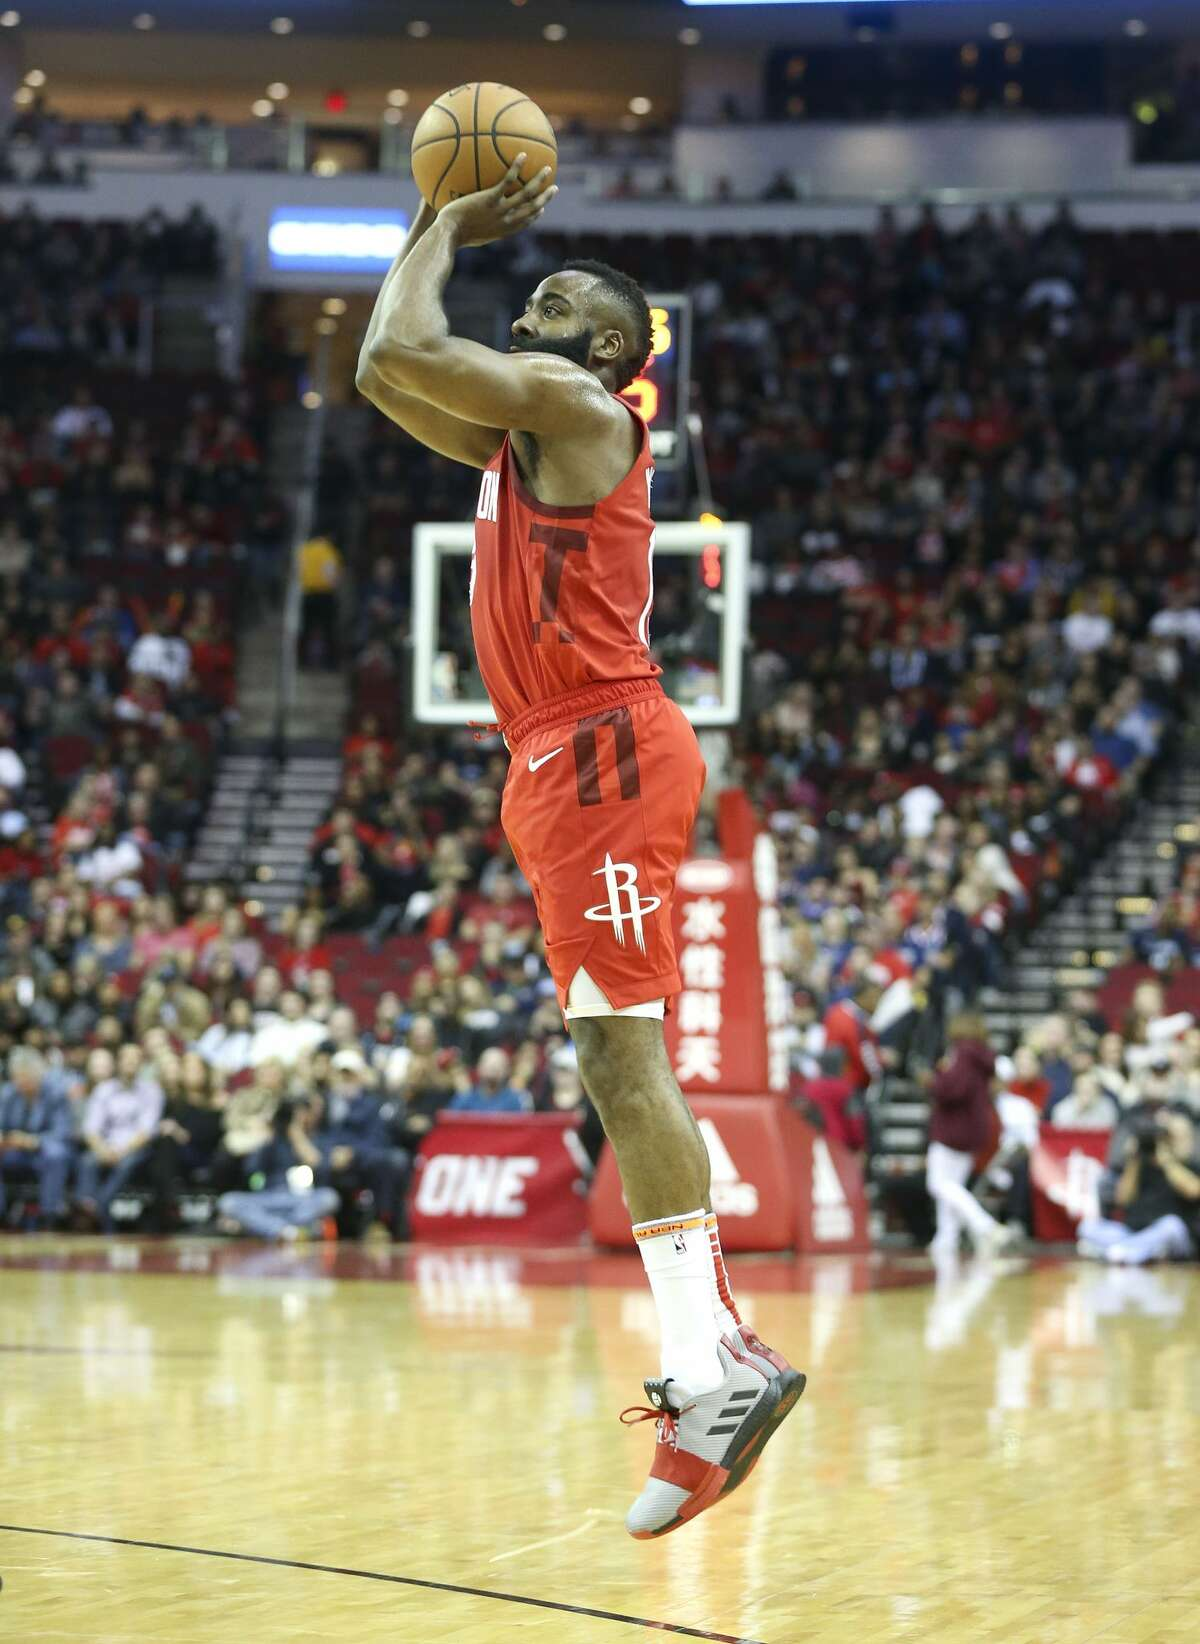 Houston Rockets guard James Harden (13) puts up a three point shot against the Memphis Grizzlies at the Toyota Center on Monday, Dec. 31, 2018 in Houston. Harden scored 43 points and got a a triple in the team's 113-101 win.